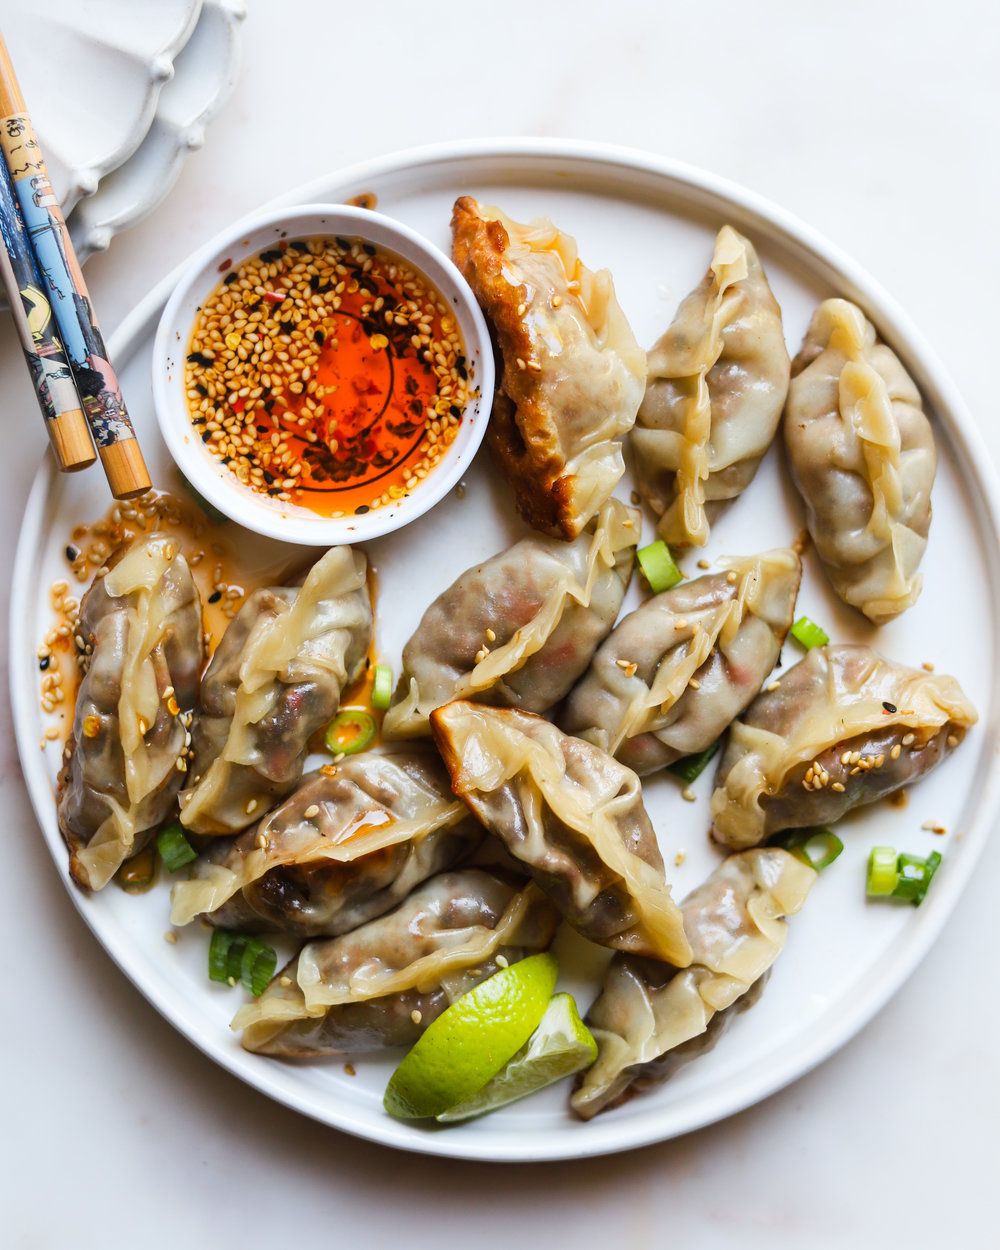 Mexican Potstickers with Chili Oil